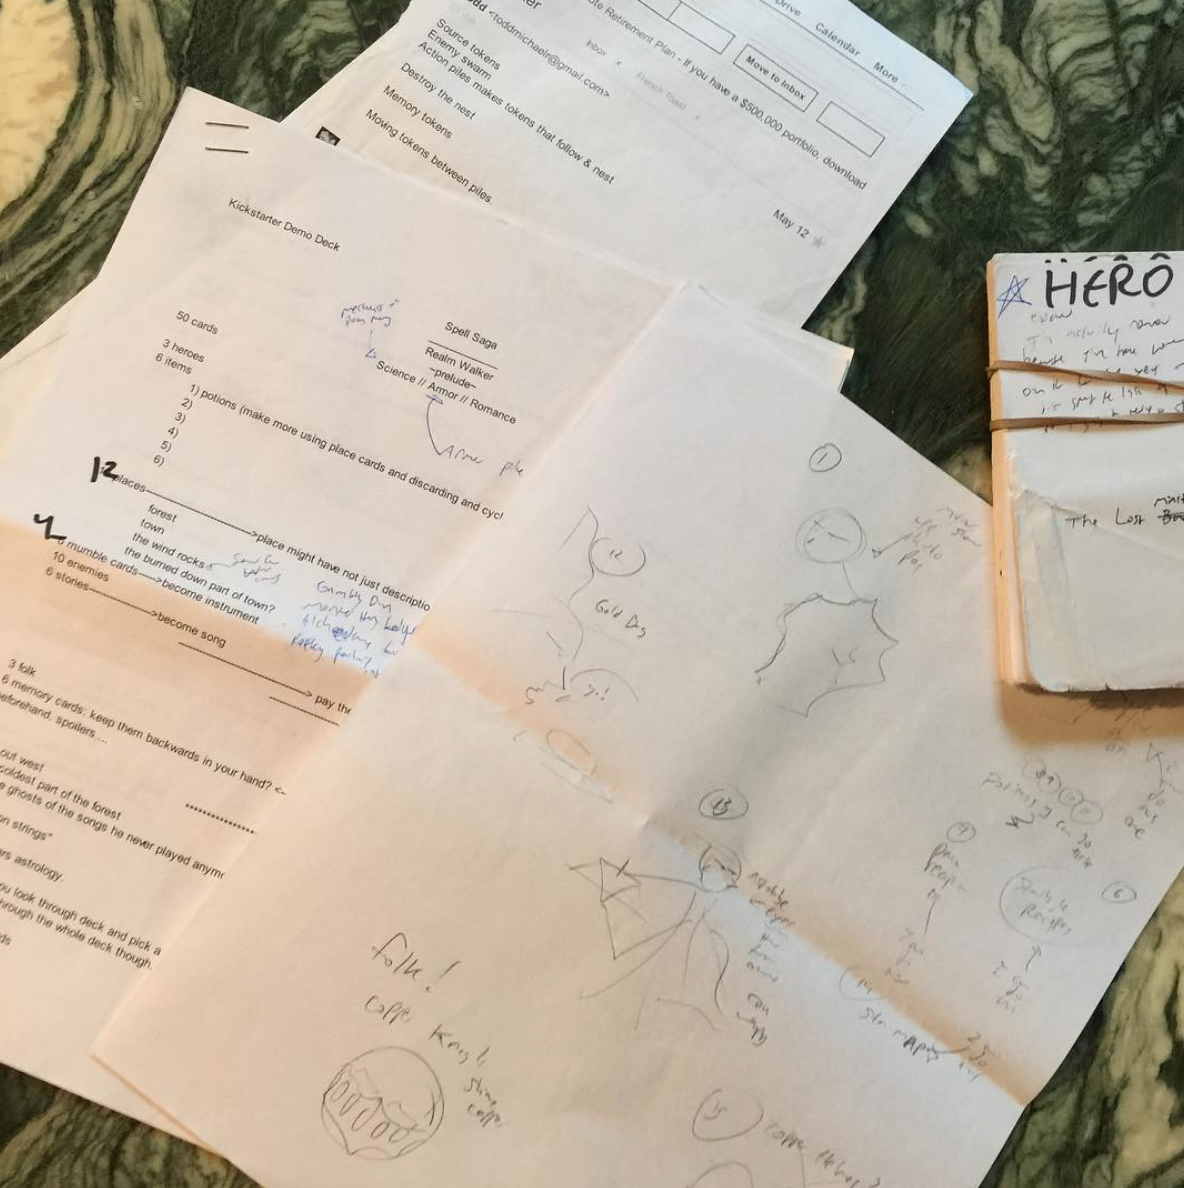 2015 original 2013 notes for rwPSAR photographed during 2015 game design